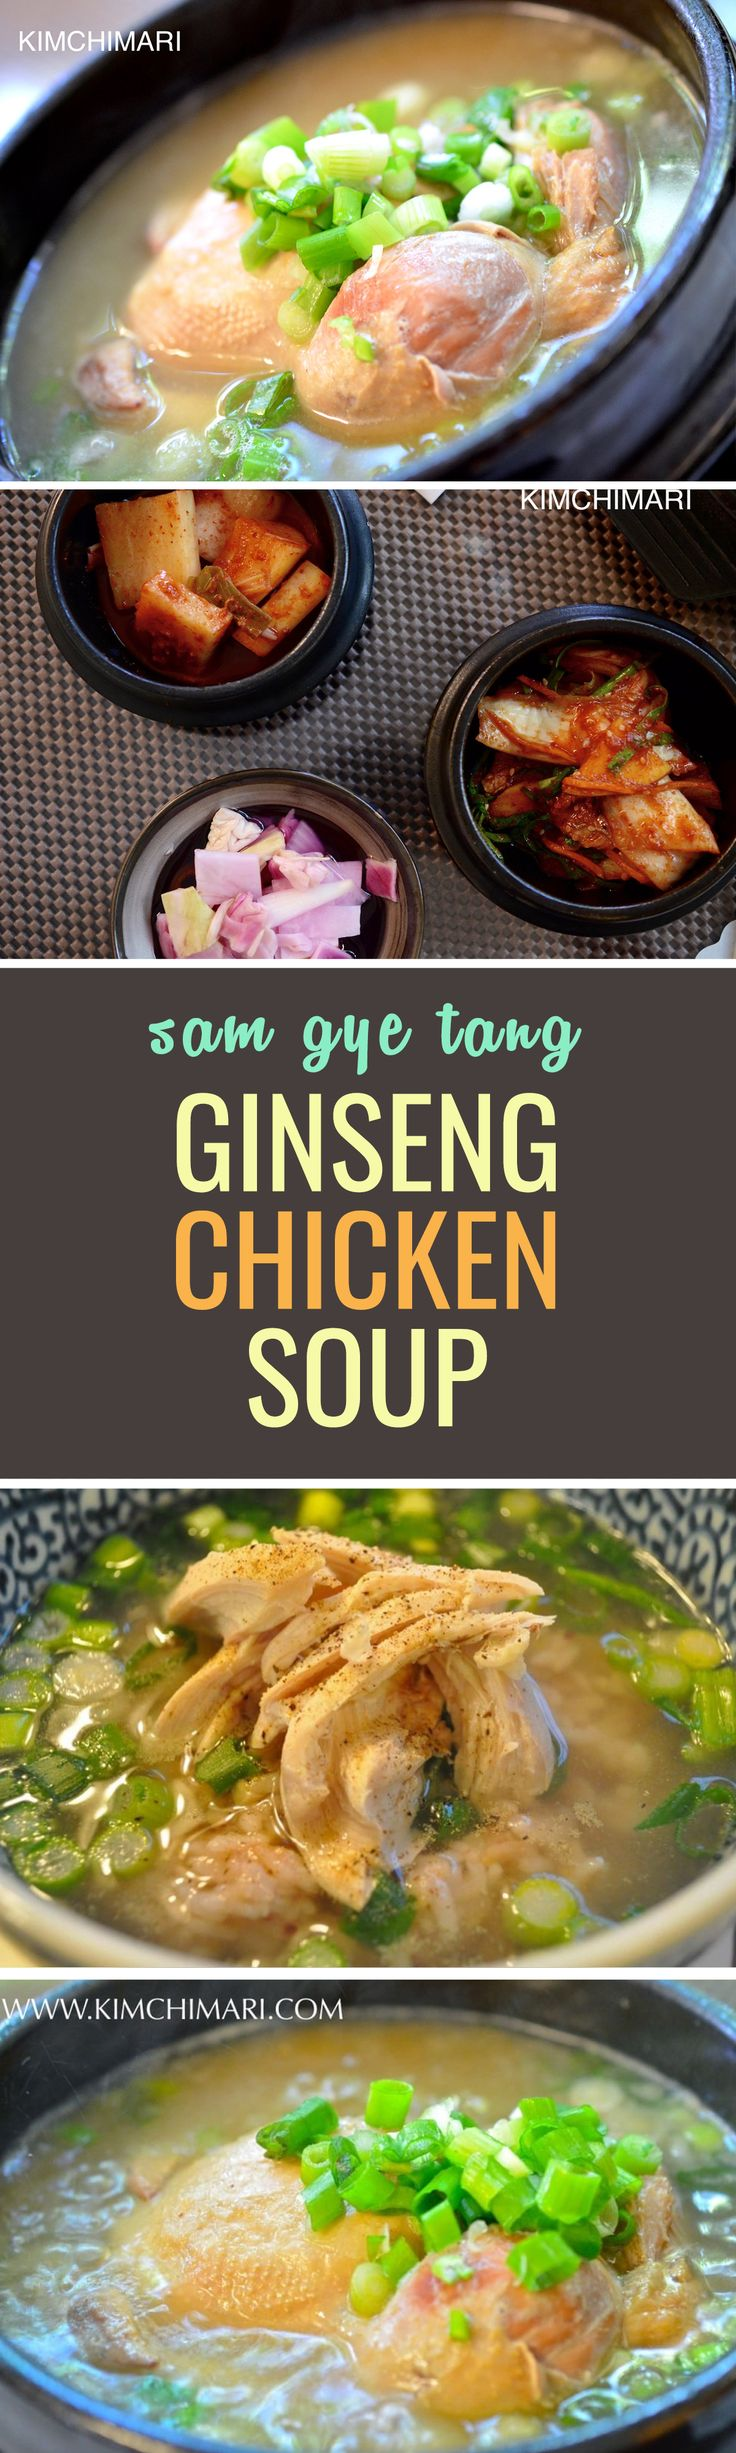 Samgyetang, aka Ginseng Chicken Soup is traditionally a summer dish (what? hot soup in summer?) but it's actually great for a little immunity boost all year round!